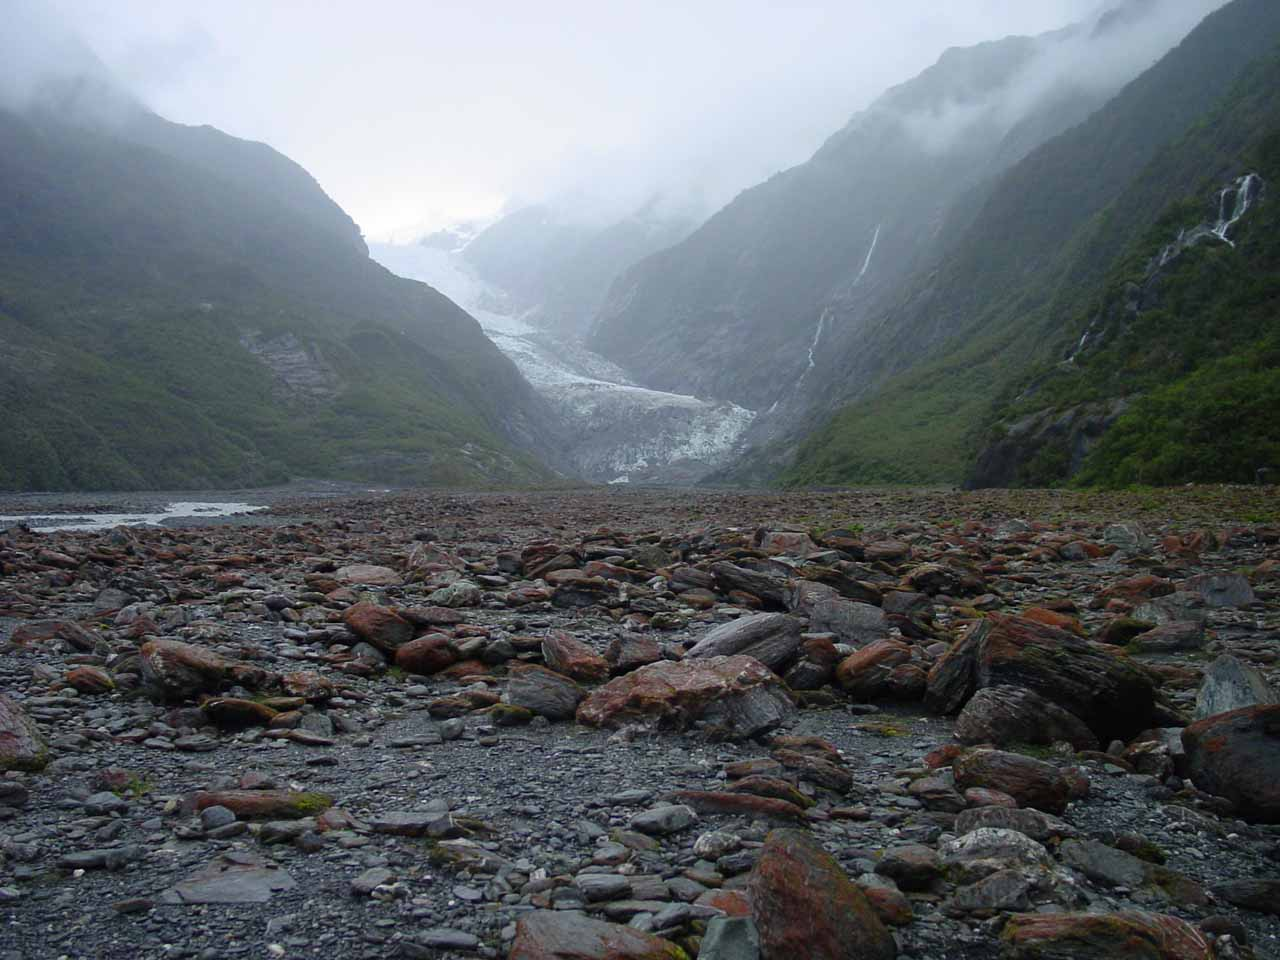 Hiking amidst the jumble of rocks while making our way to the terminus of Franz Josef Glacier